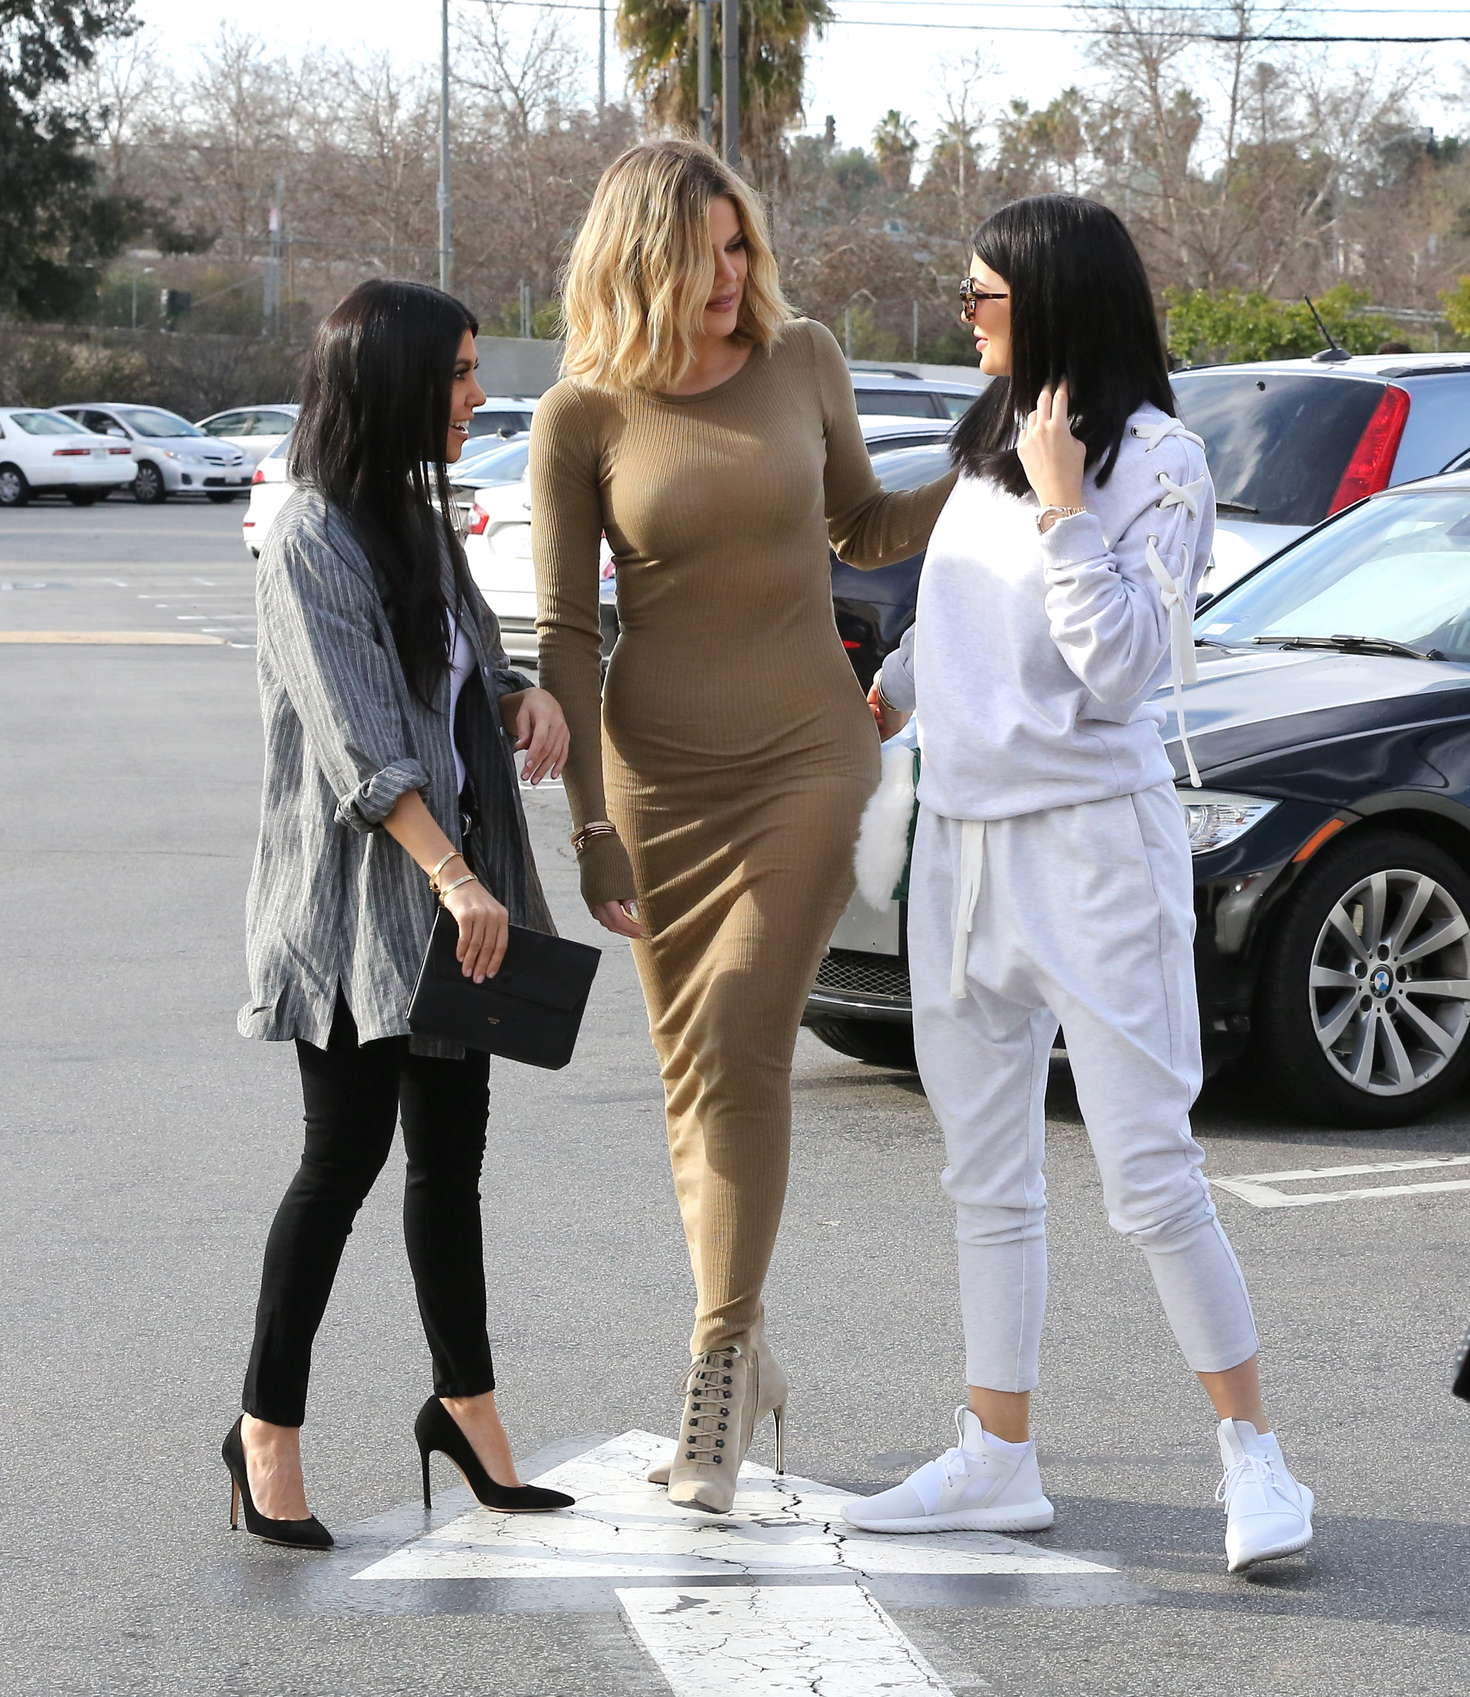 Kourtney and Khloe Kardashian and Kylie Jenner - Filming for 'Keeping Up with the Kardashians' in Calabasas